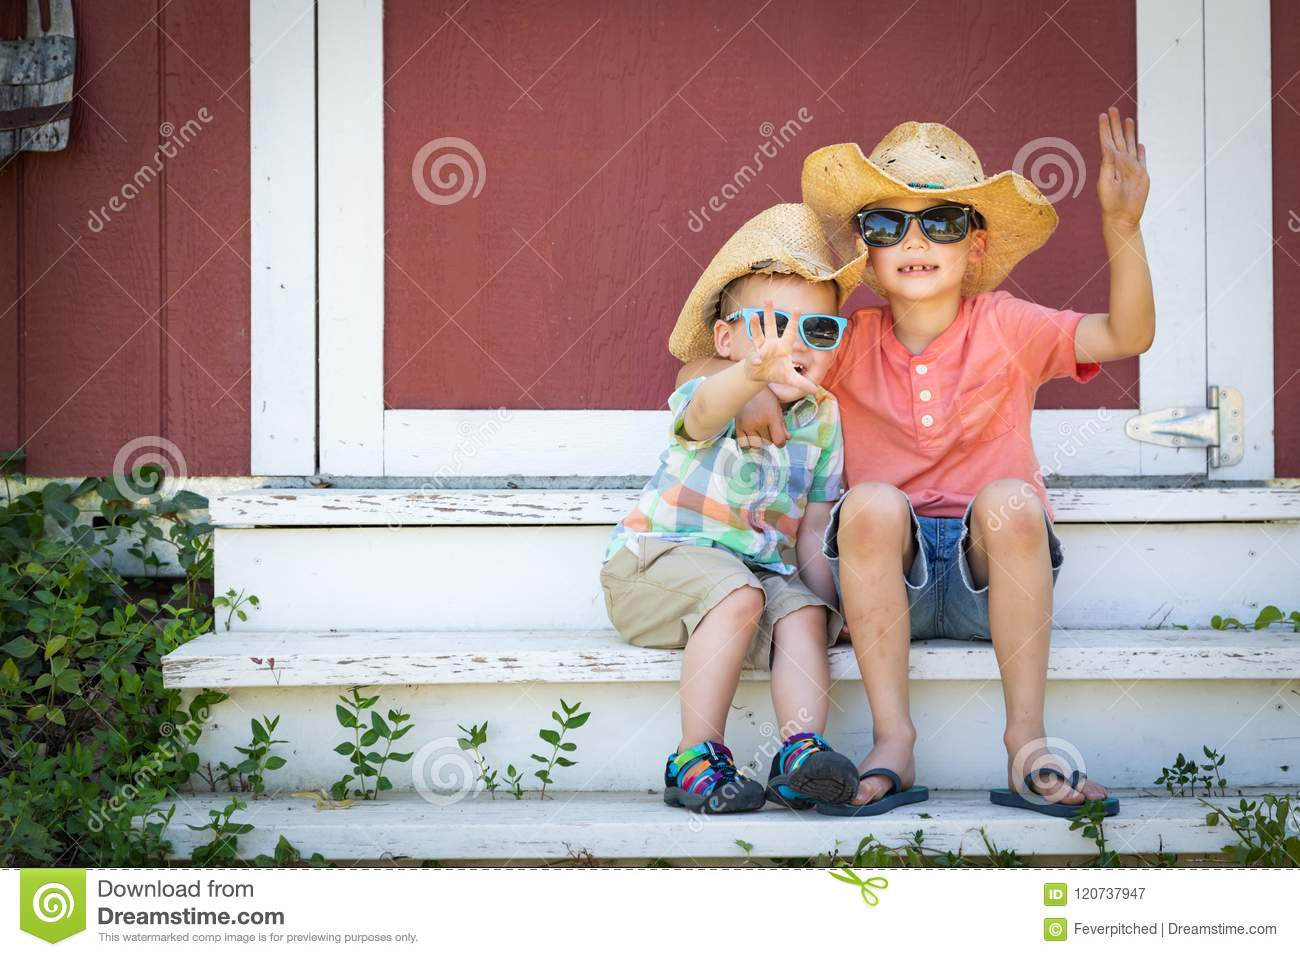 Mixed Race Chinese and Caucasian Young Brothers Having Fun Wearing Sunglasses and Cowboy Hats